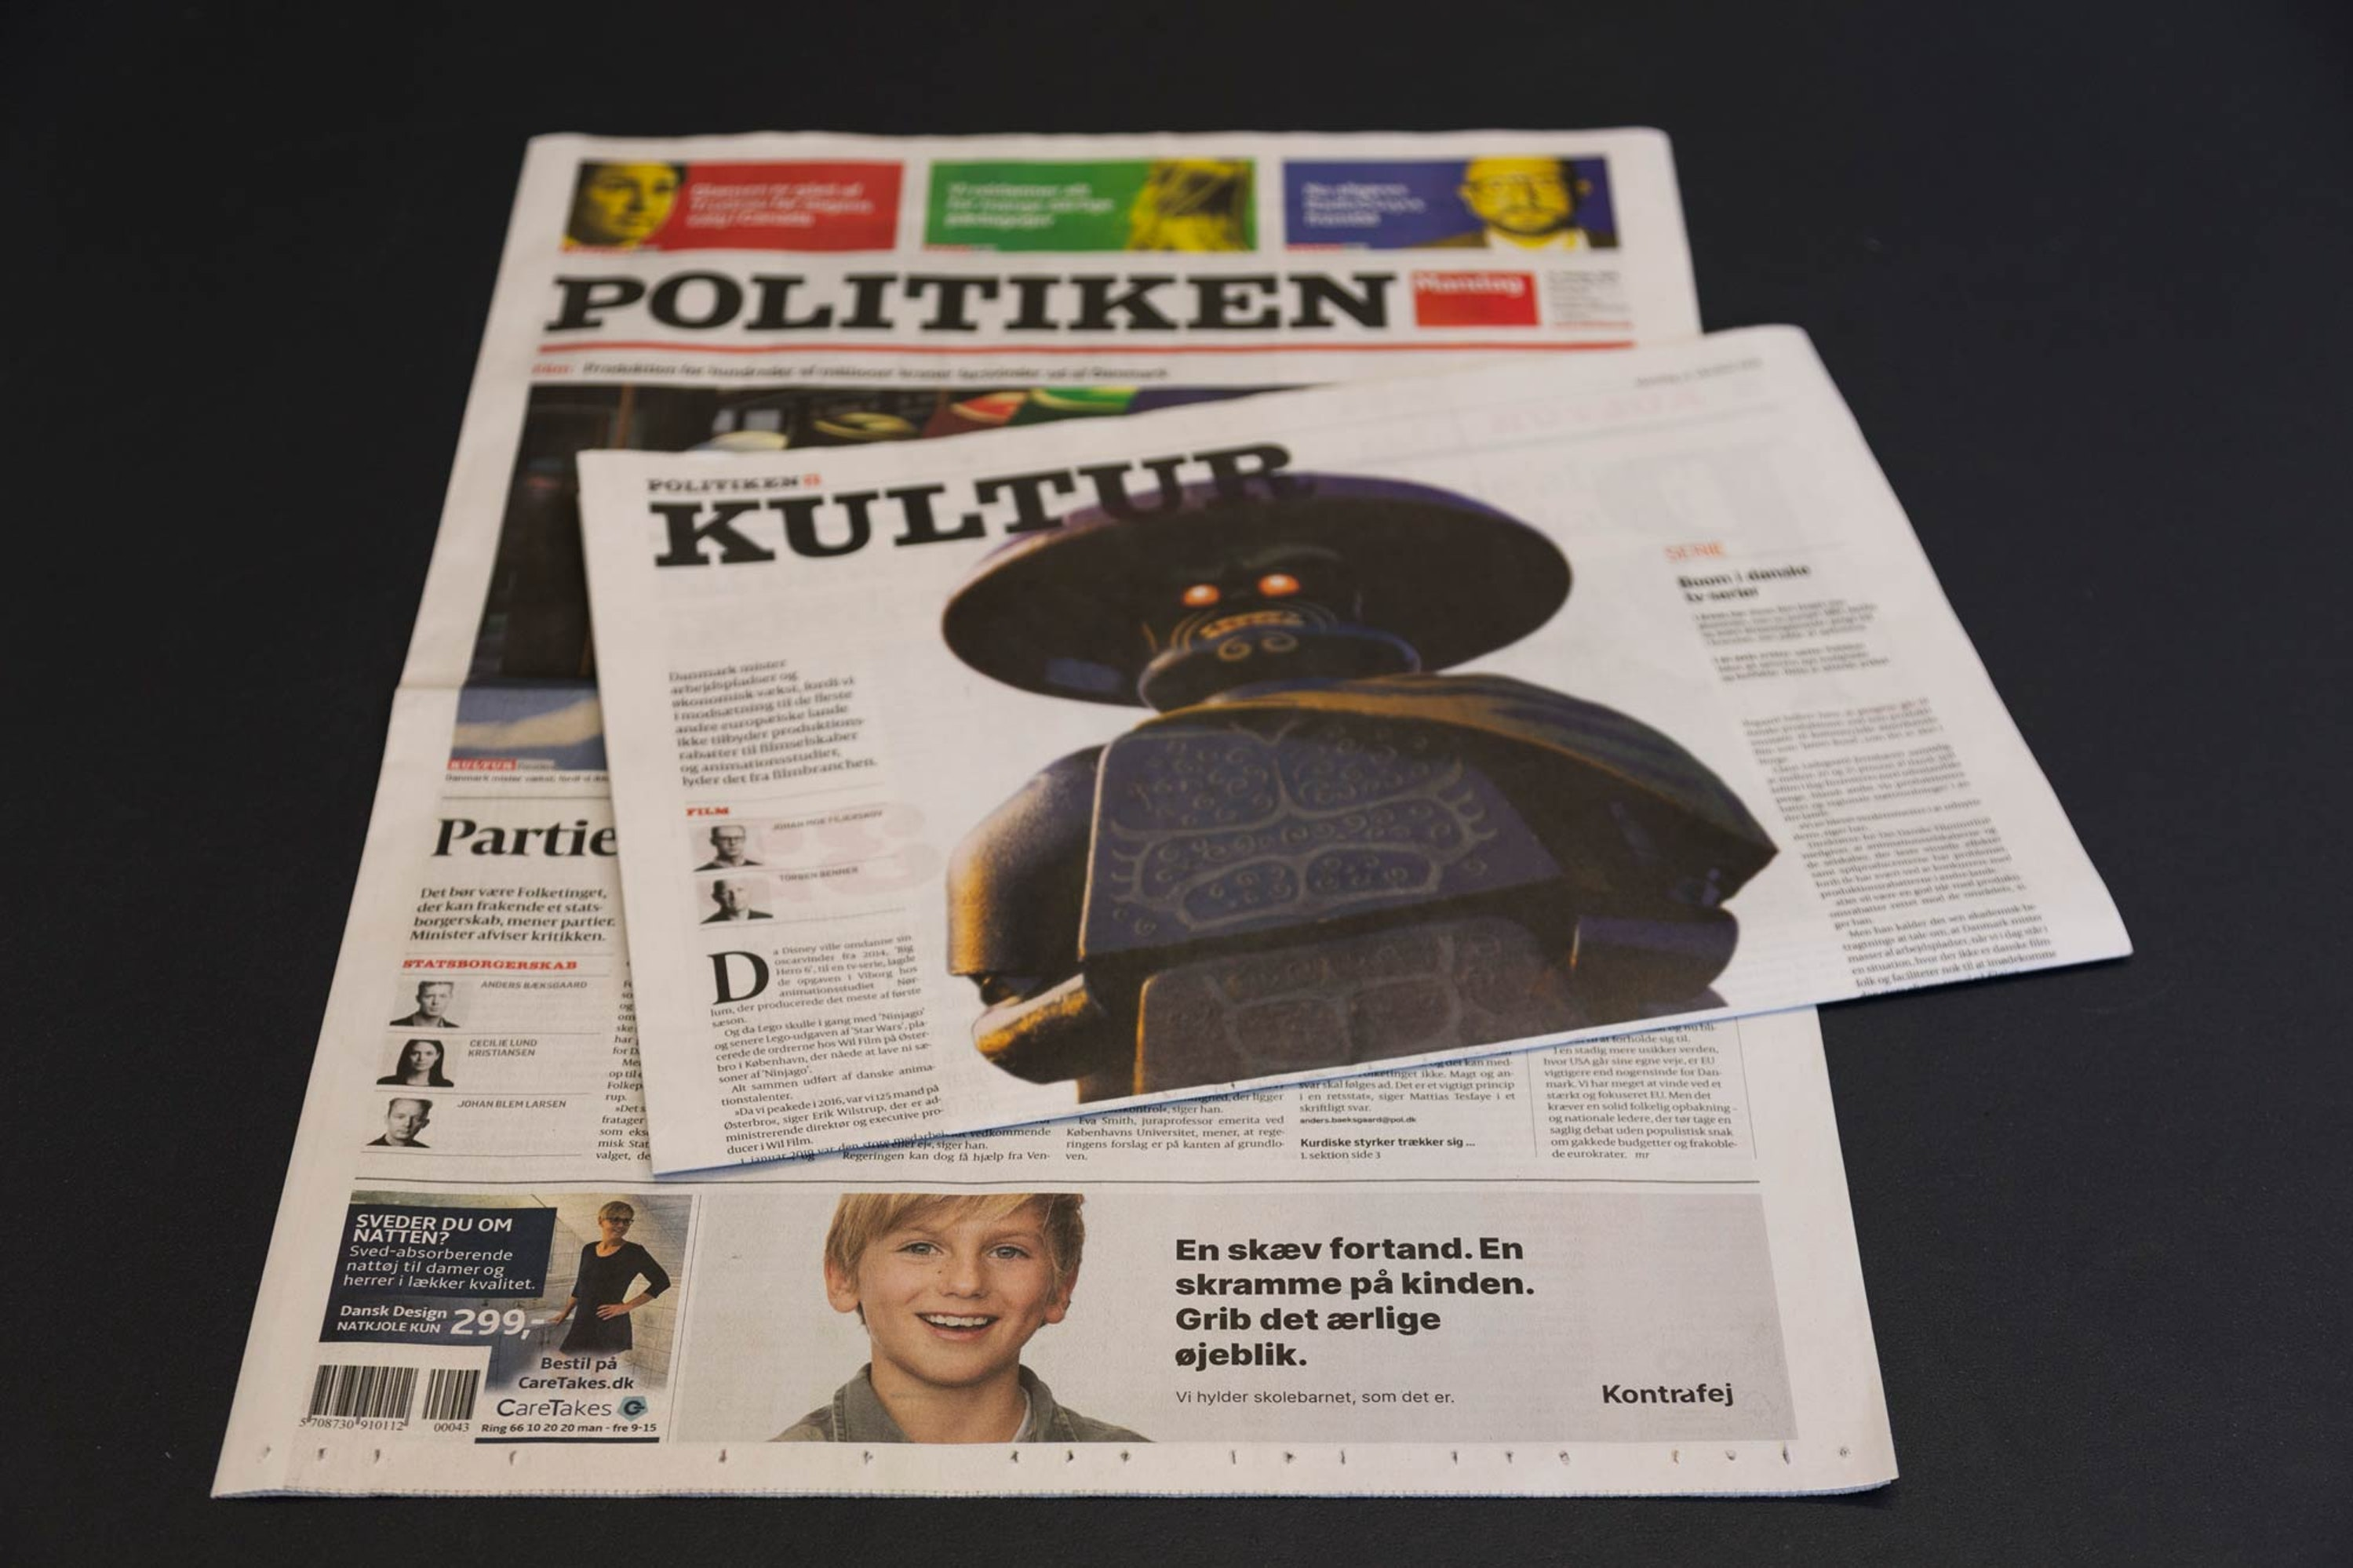 Cover of politiken newspaper